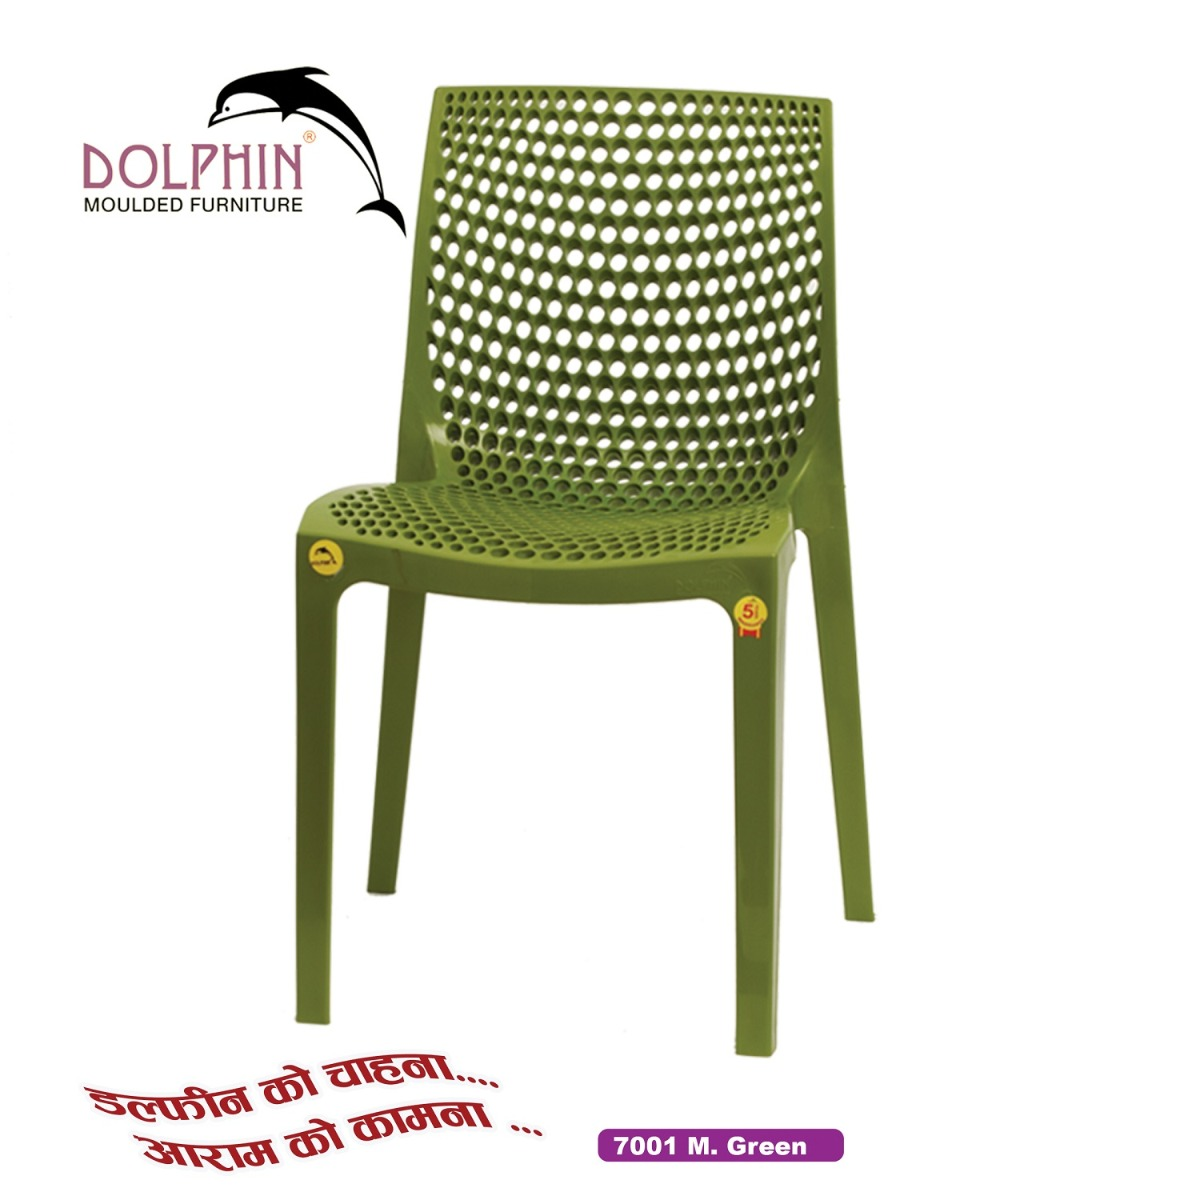 Buy Dolphin Plastic Chair Model - 7001 (Green) And Get 1 Pirka Free